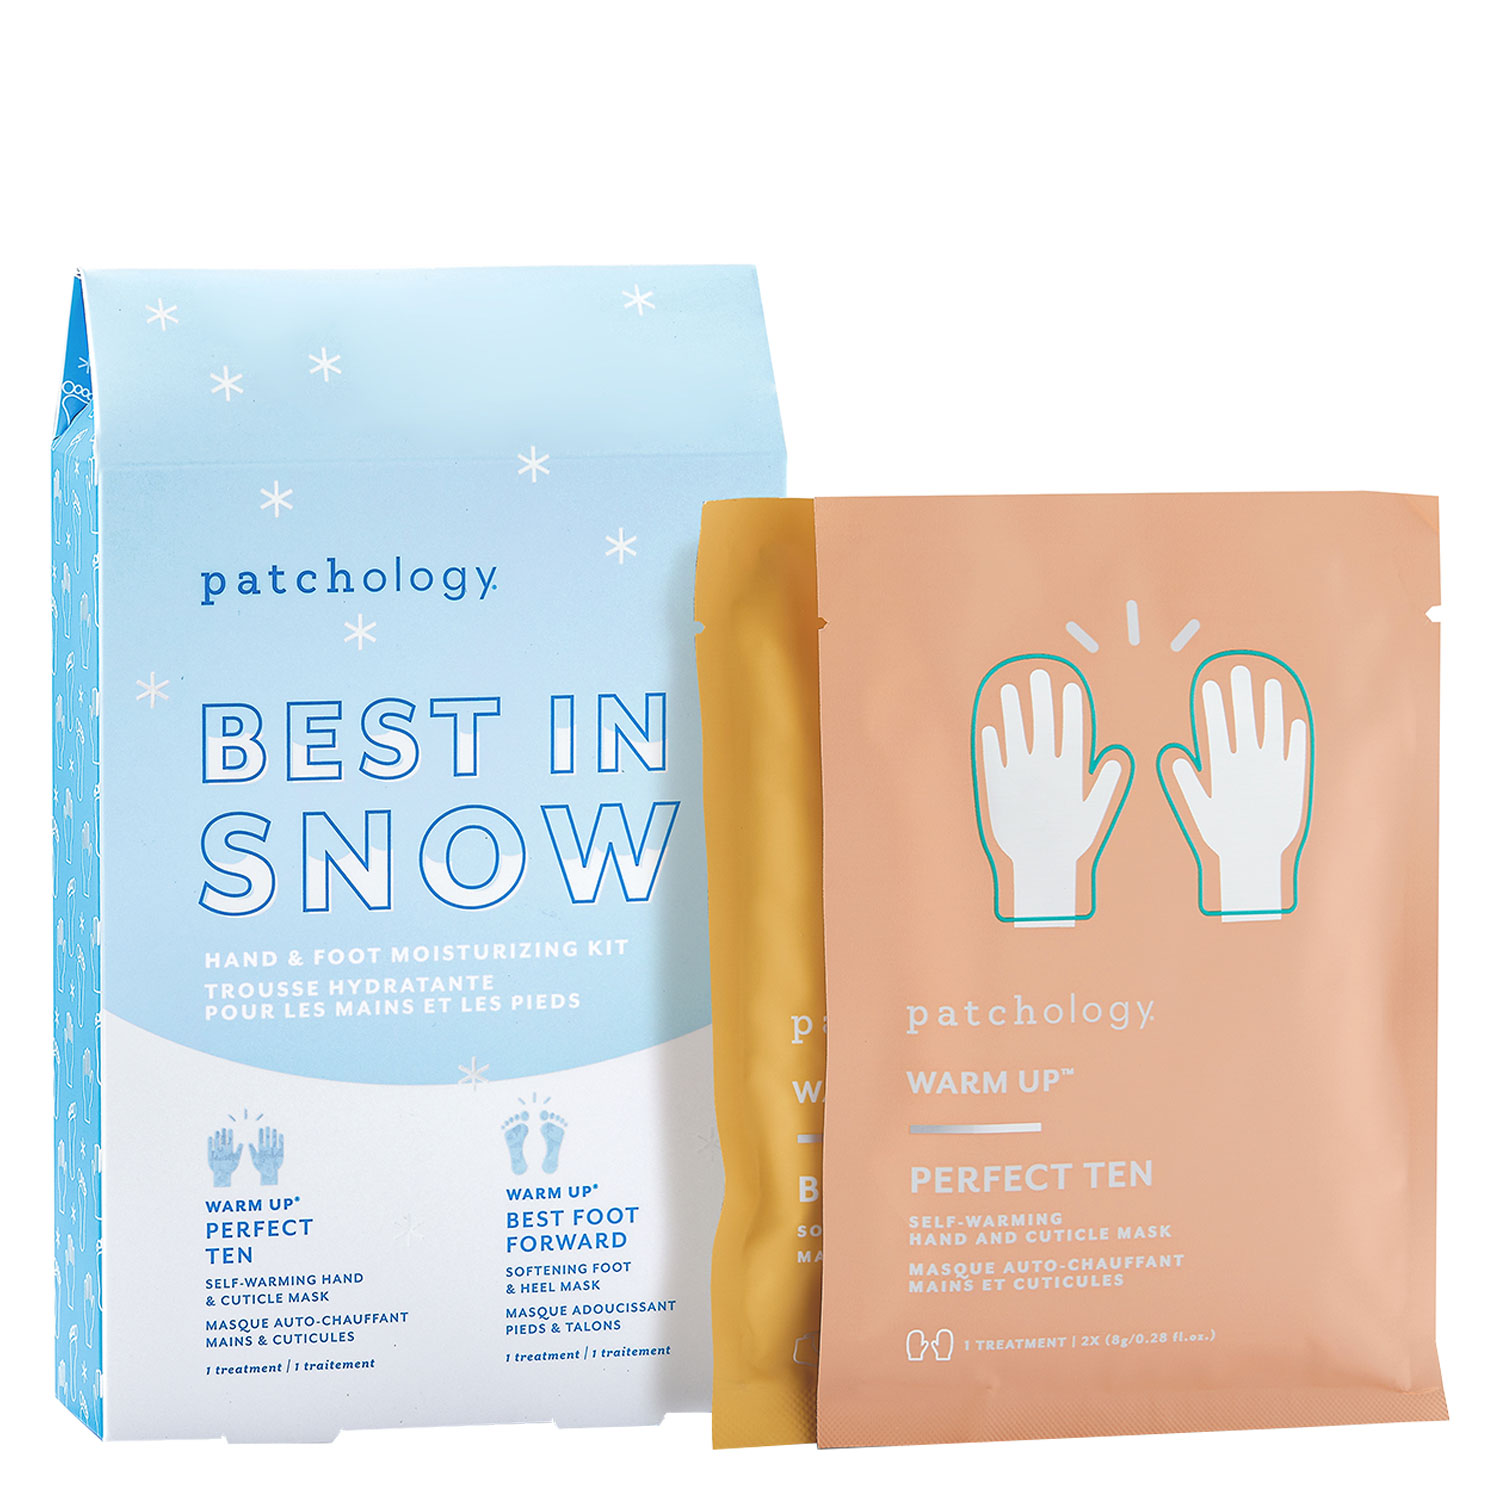 patchology Kits - Best in Snow Kit